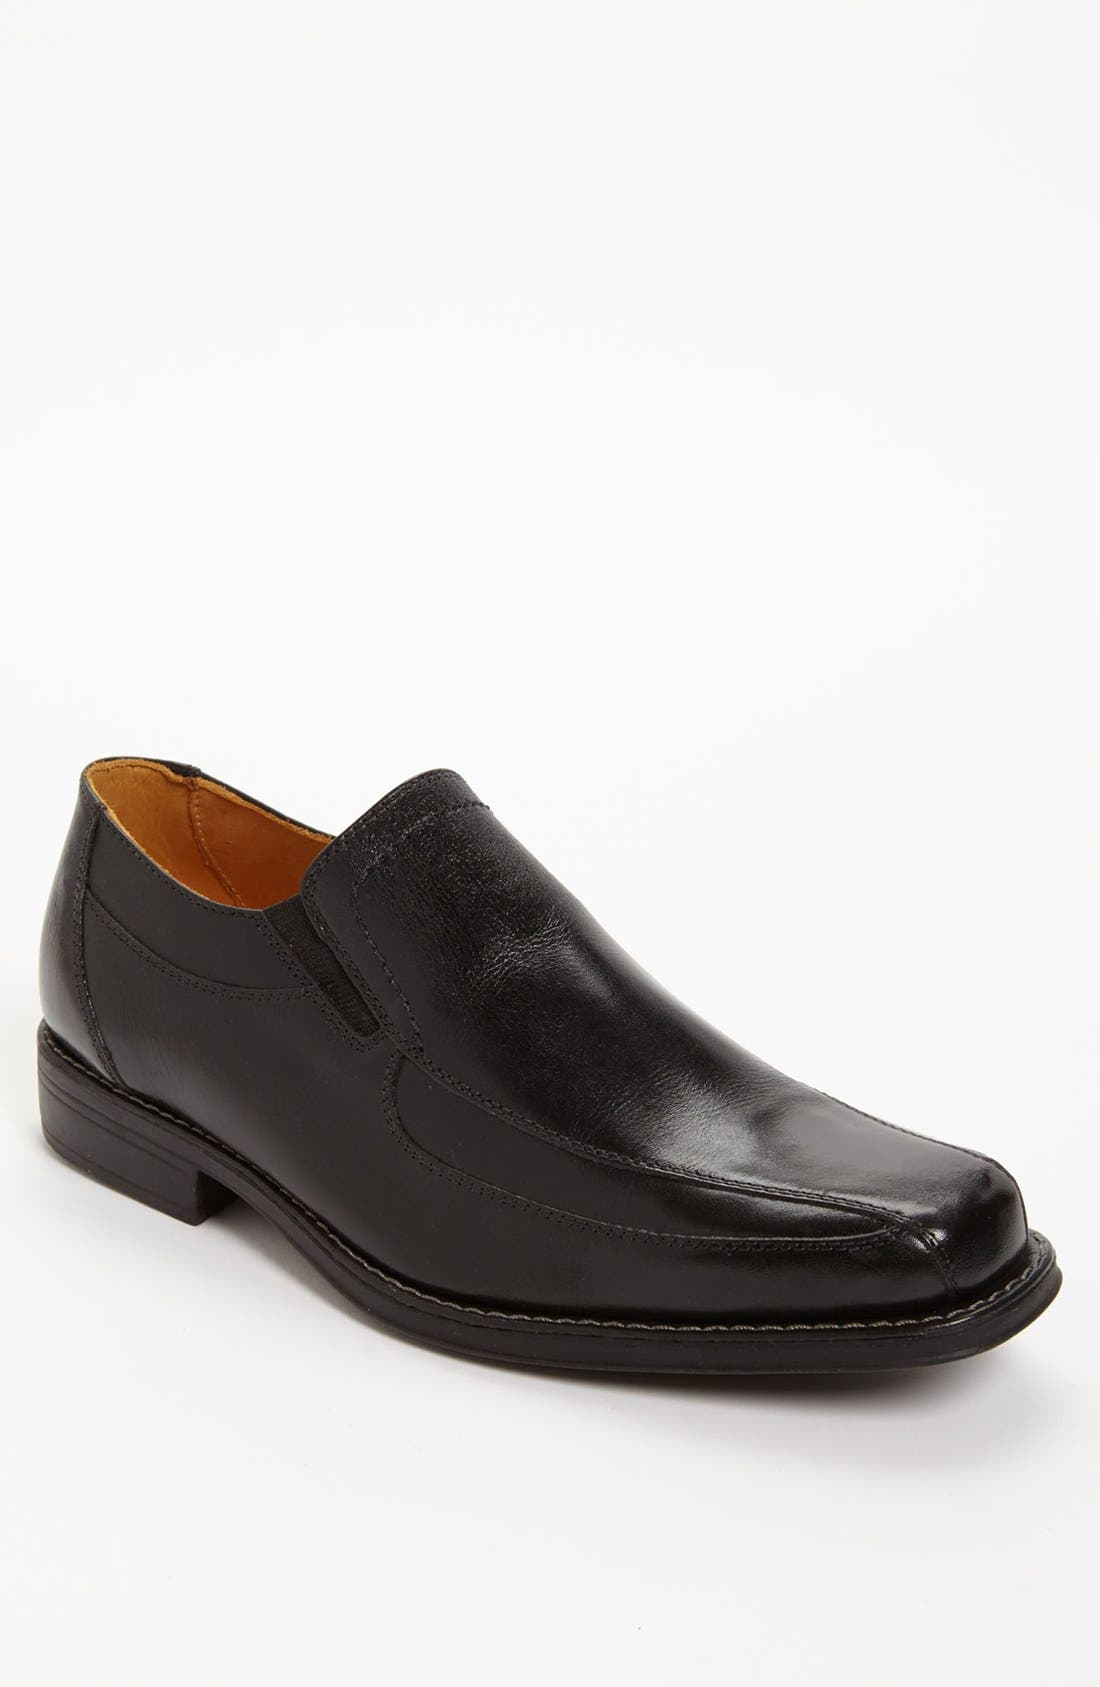 Alternate Image 1 Selected - Sandro Moscoloni 'Berwyn' Venetian Loafer